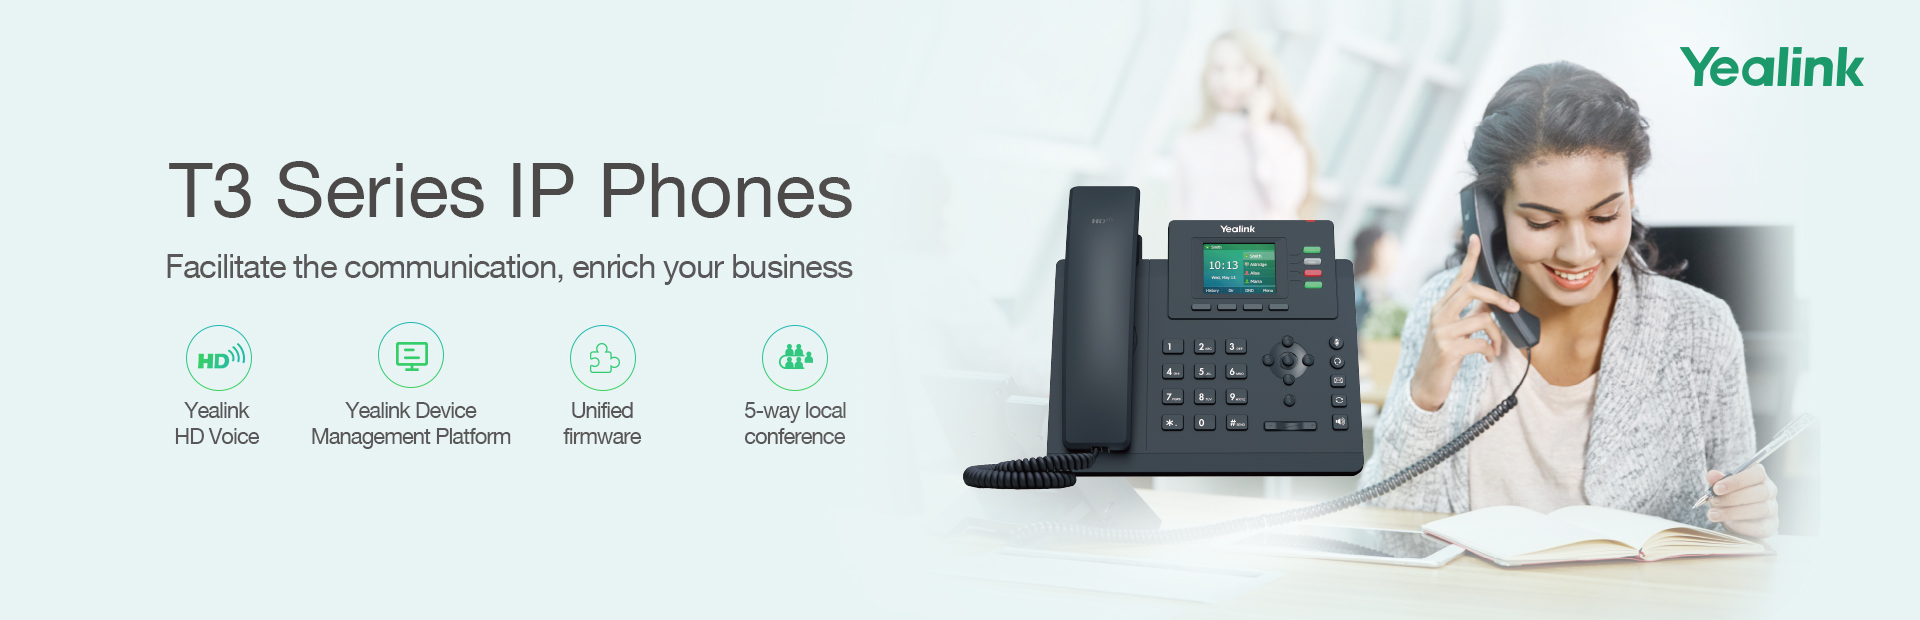 Yealink T3 Series IP Phones